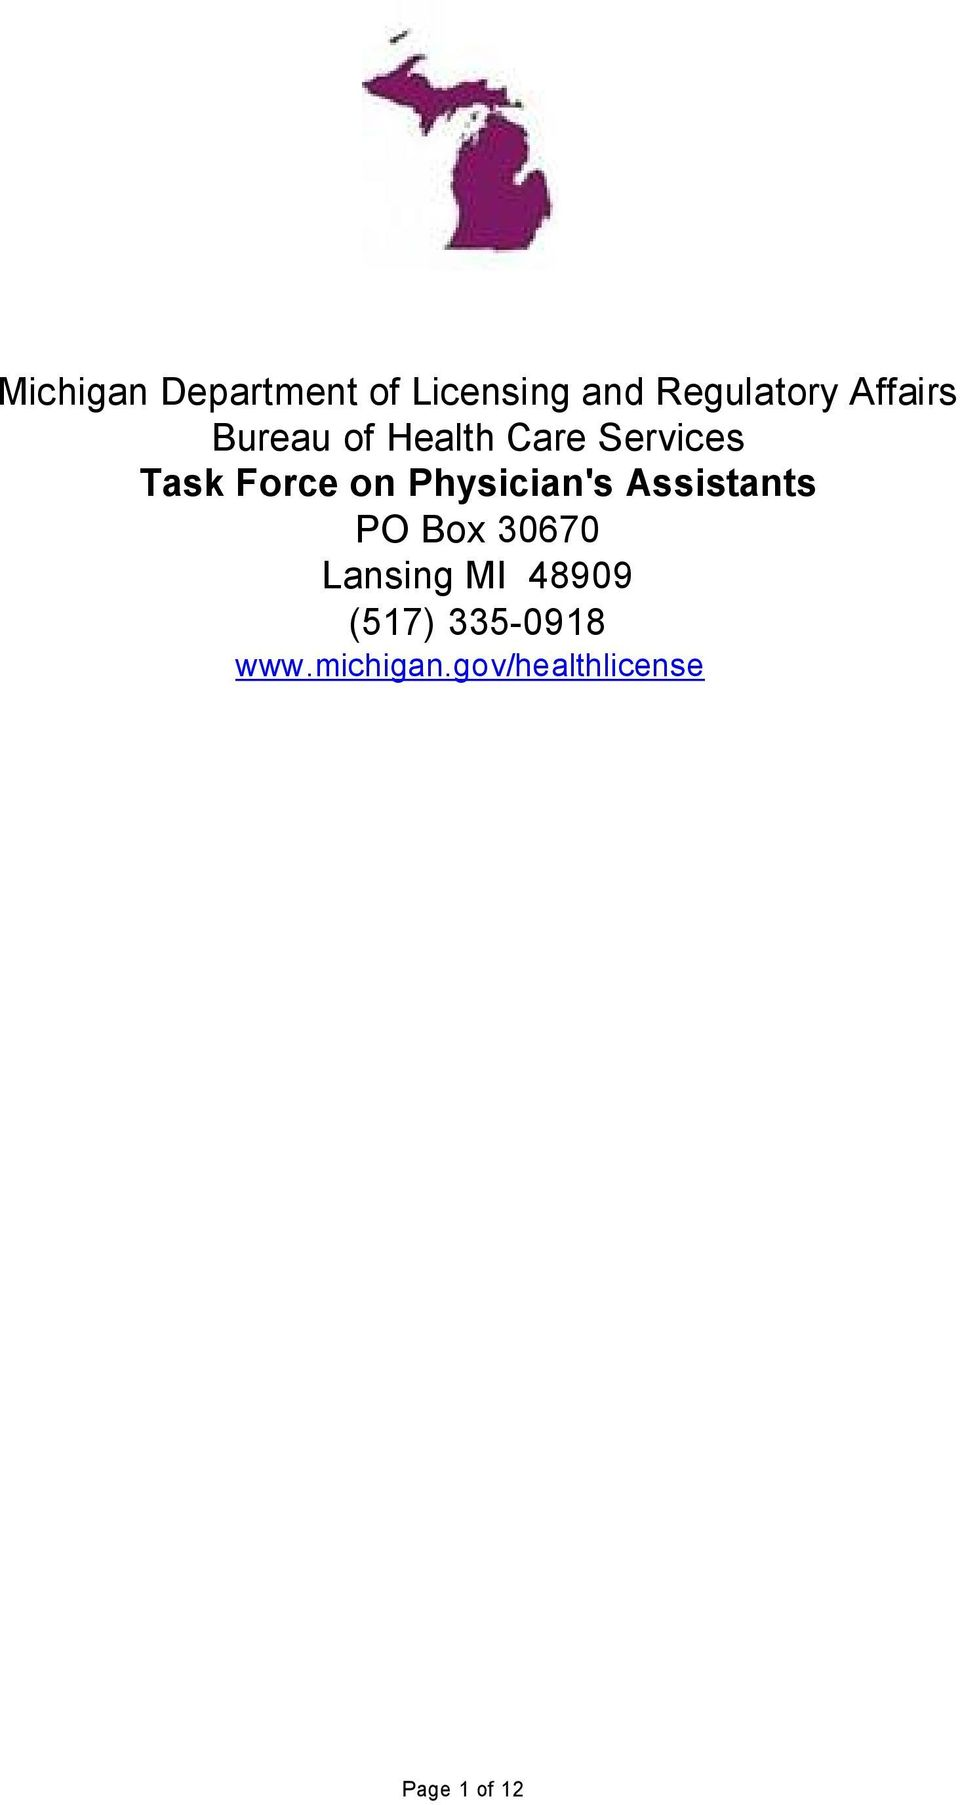 Physician's Assistants PO Box 30670 Lansing MI 48909